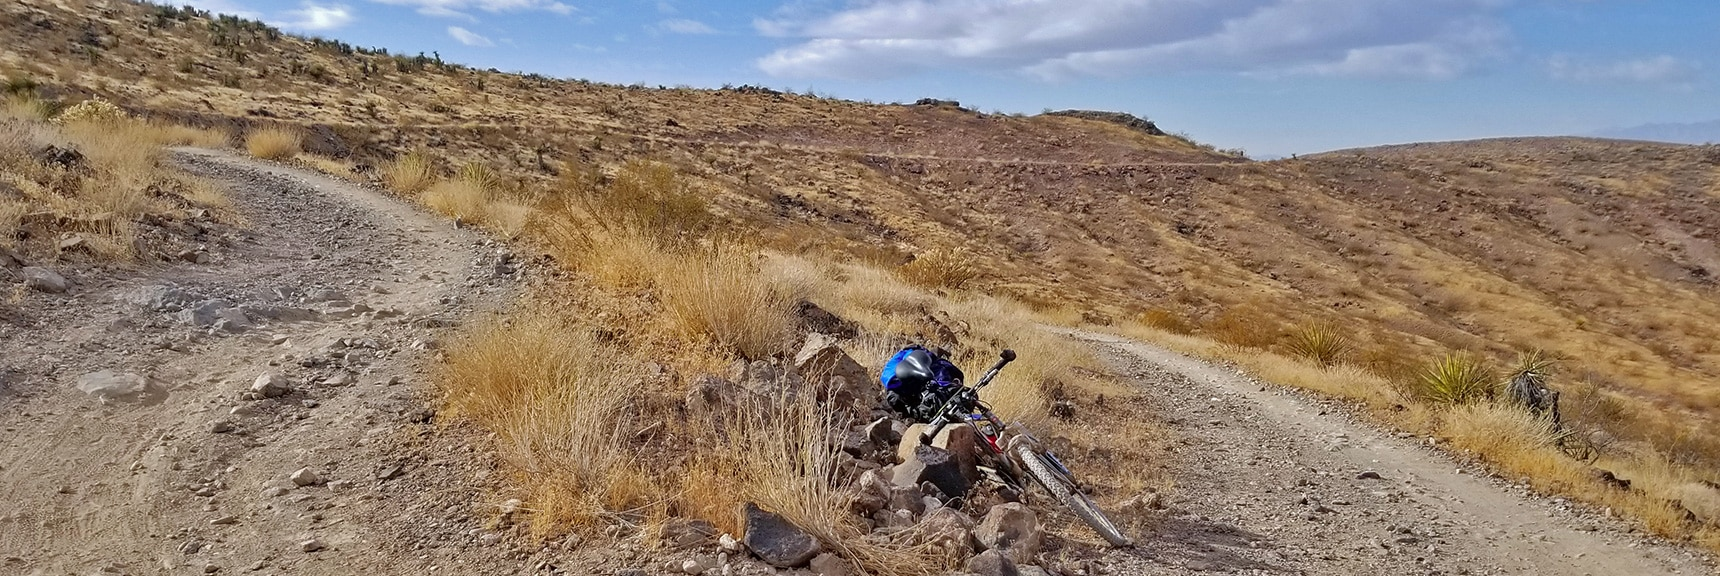 Navigating Switchbacks as the Angle of Elevation Increases   McCullough Hills Trail in Sloan Canyon National Conservation Area, Nevada